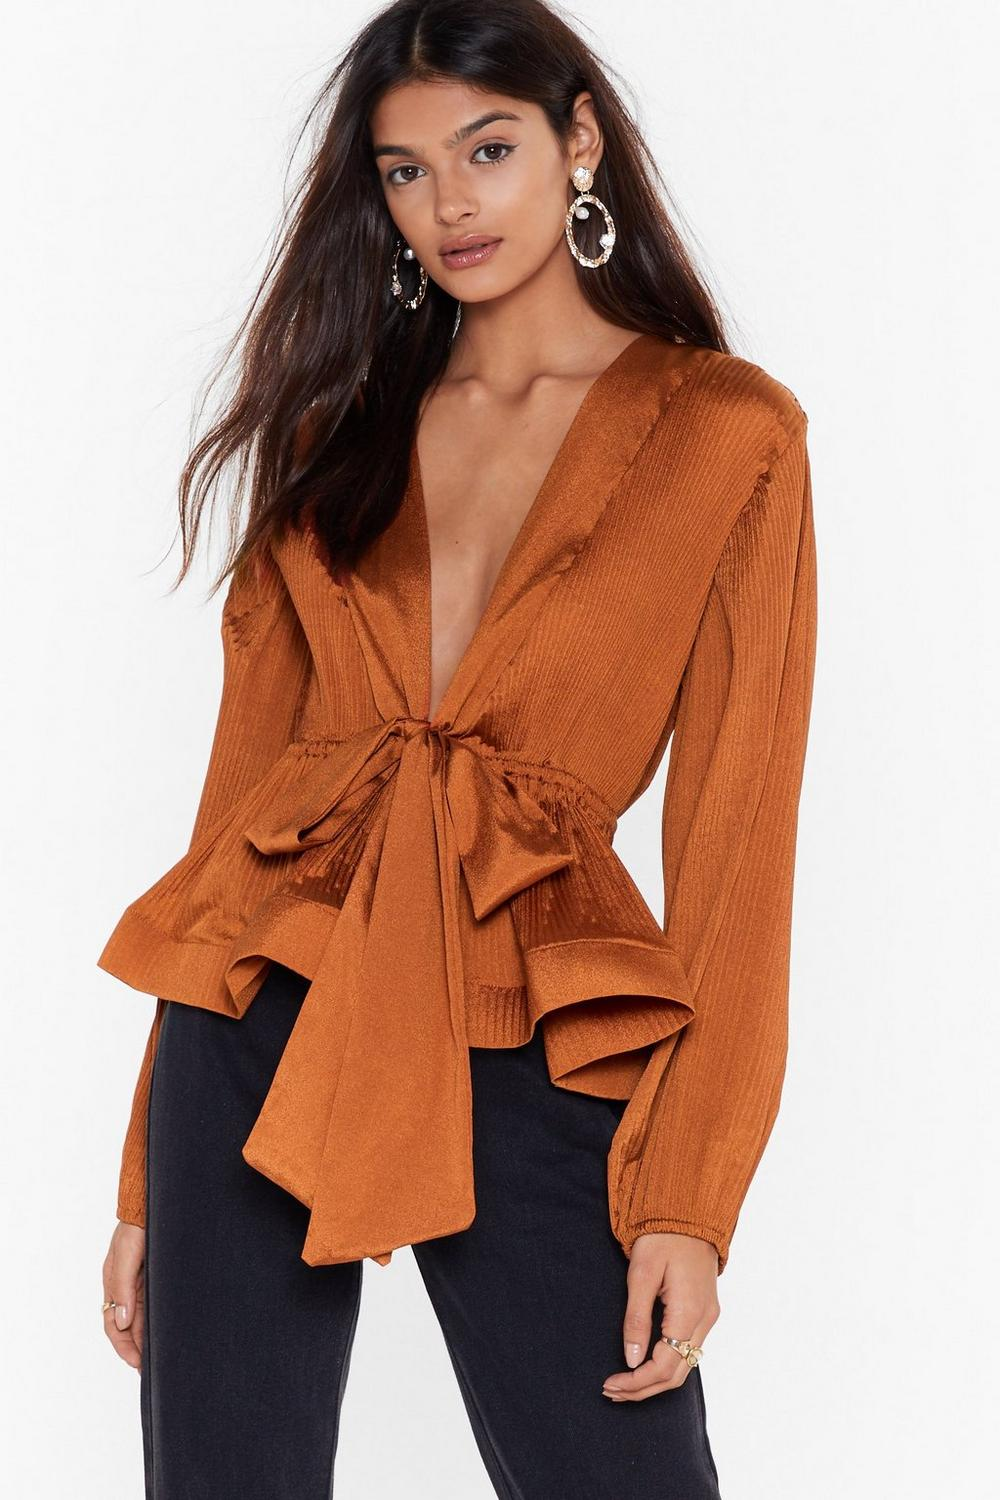 Pleat Don't Call Plunging Tie Blouse by Nasty Gal